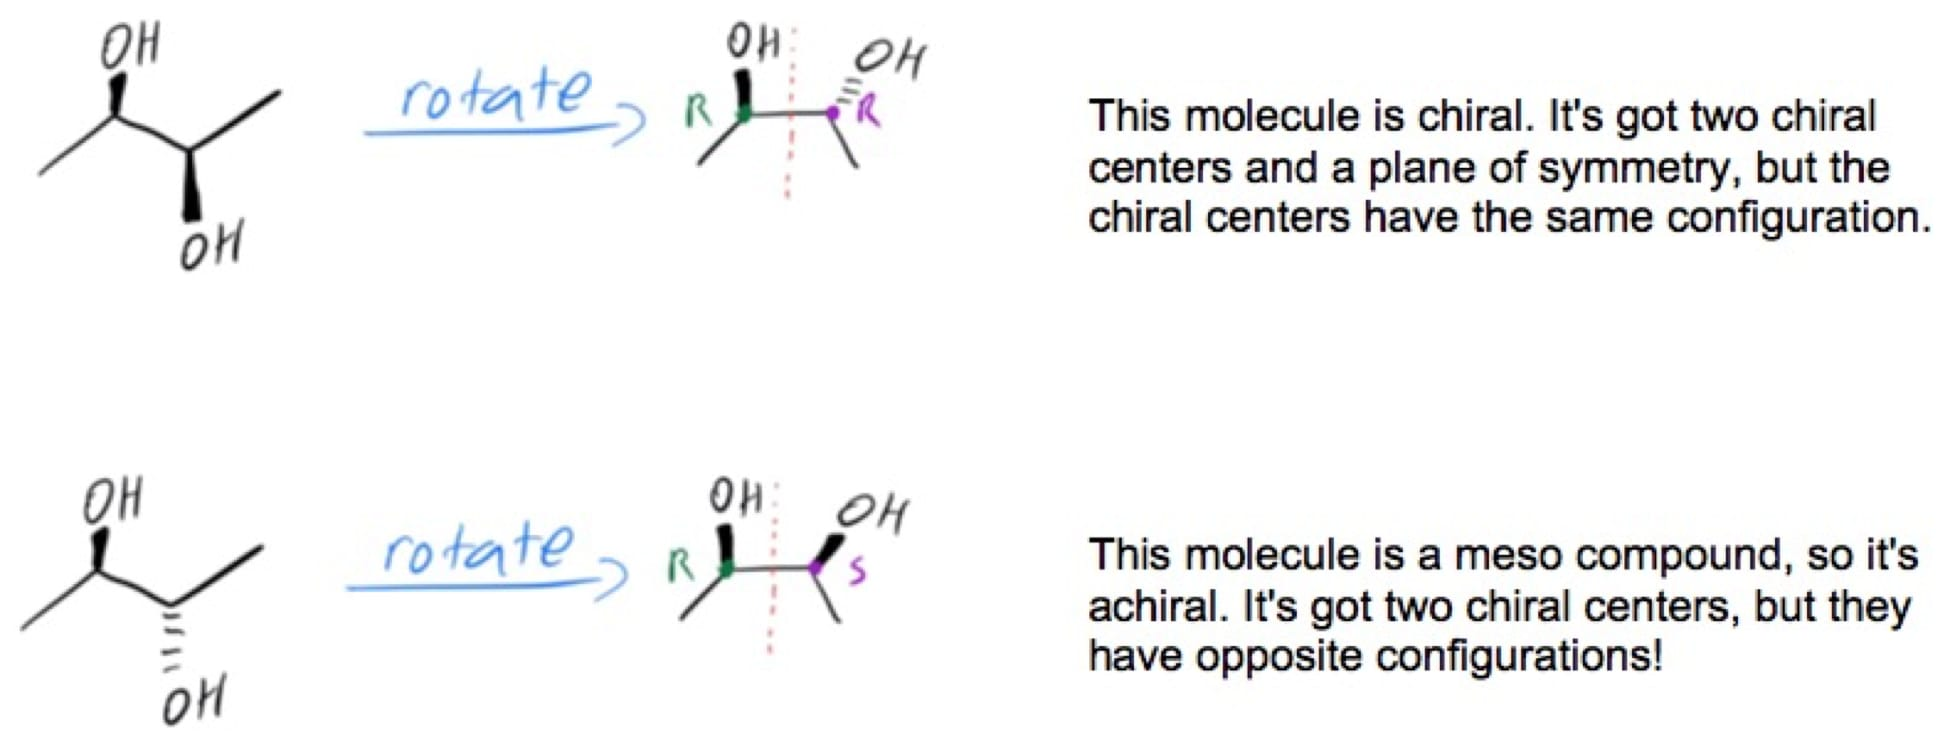 Rotating a straight-chain molecule to visually identify a meso compound